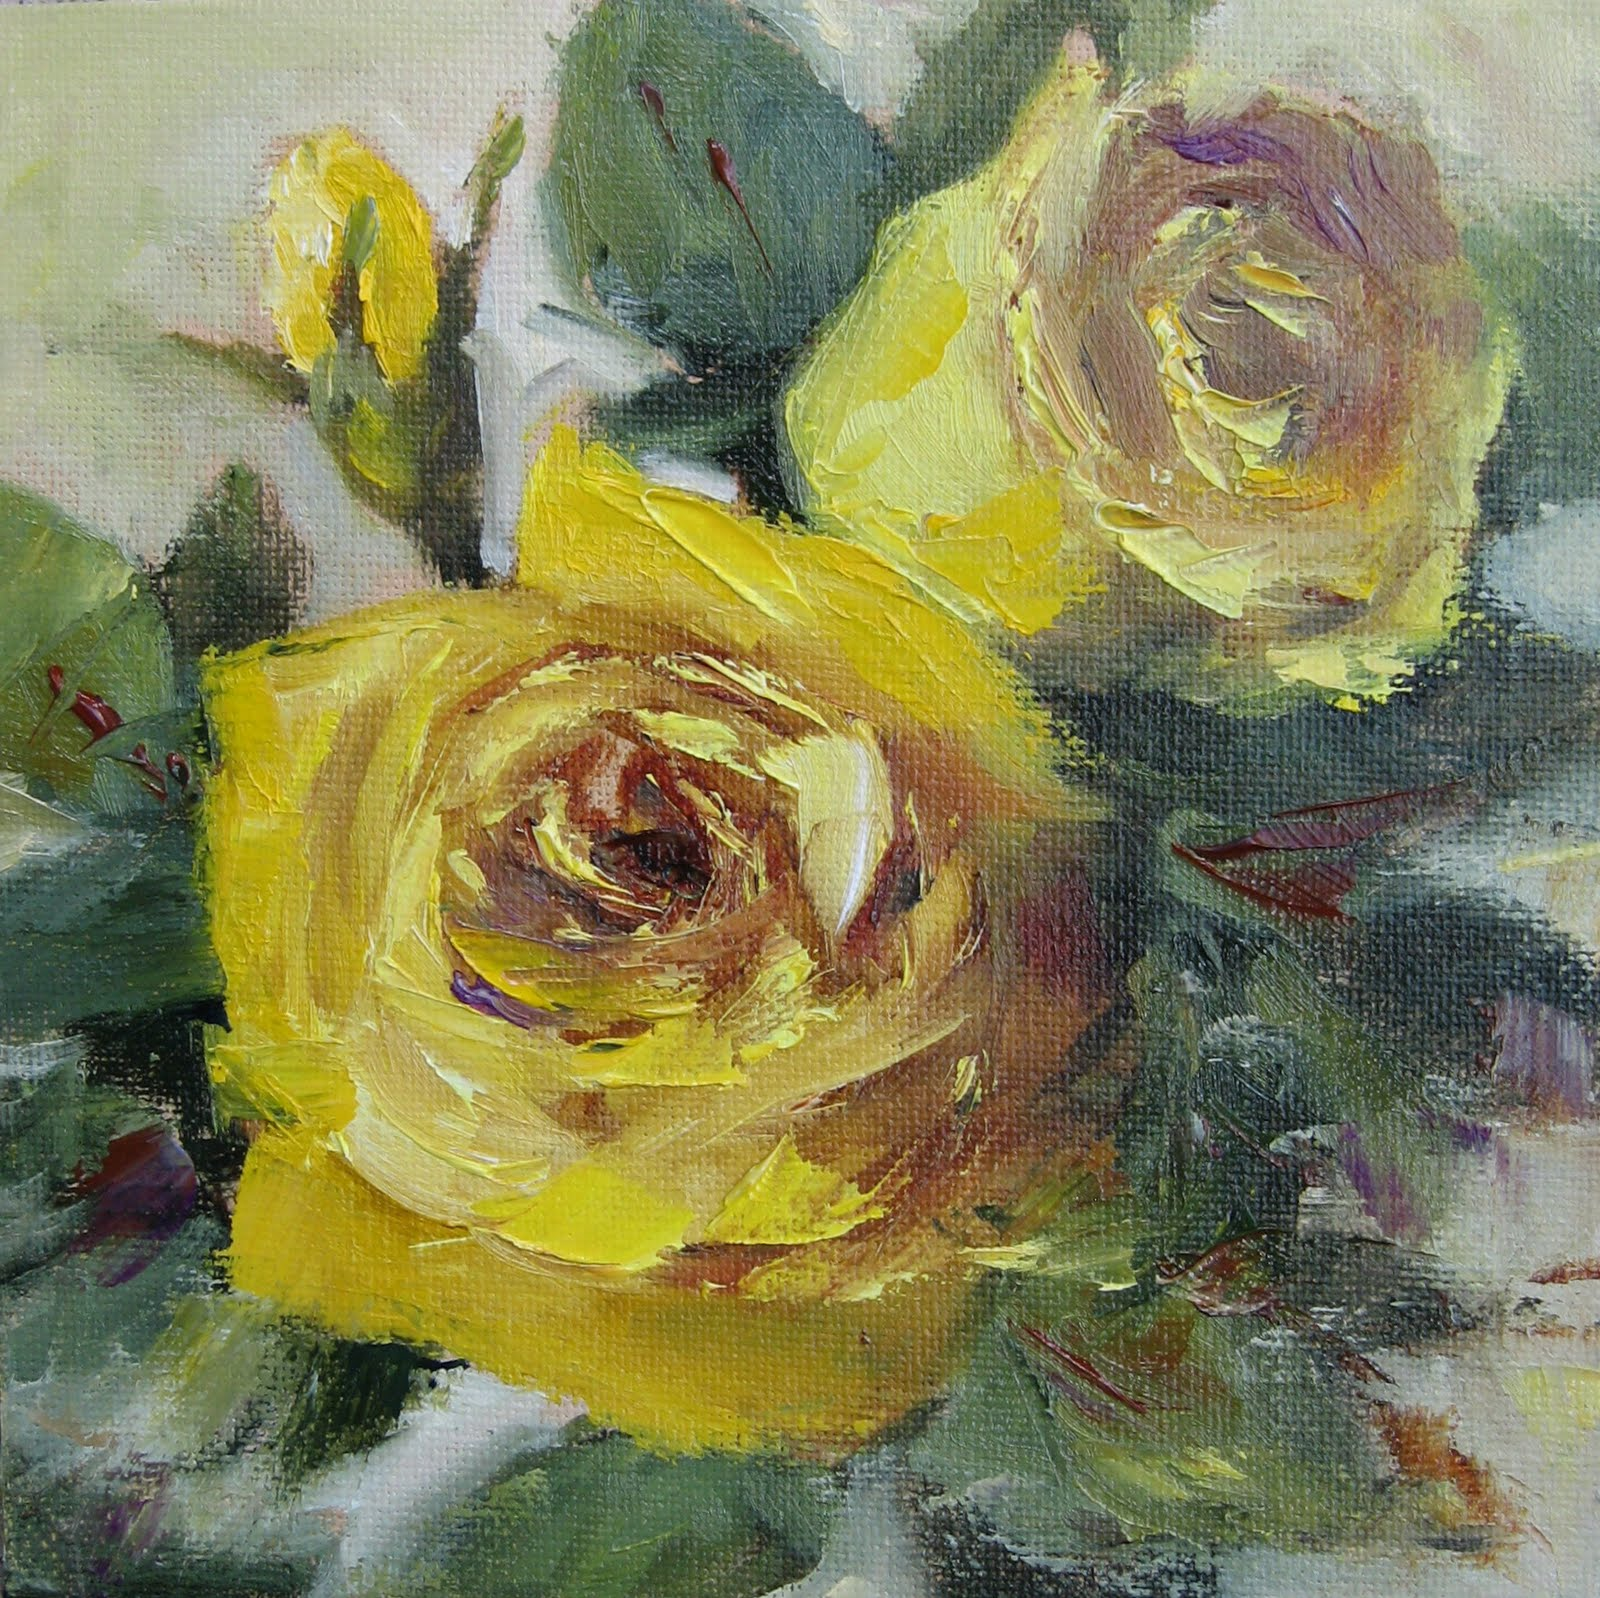 Pat fiorello art elevates life flower study 31 yellow for How to oil paint flowers